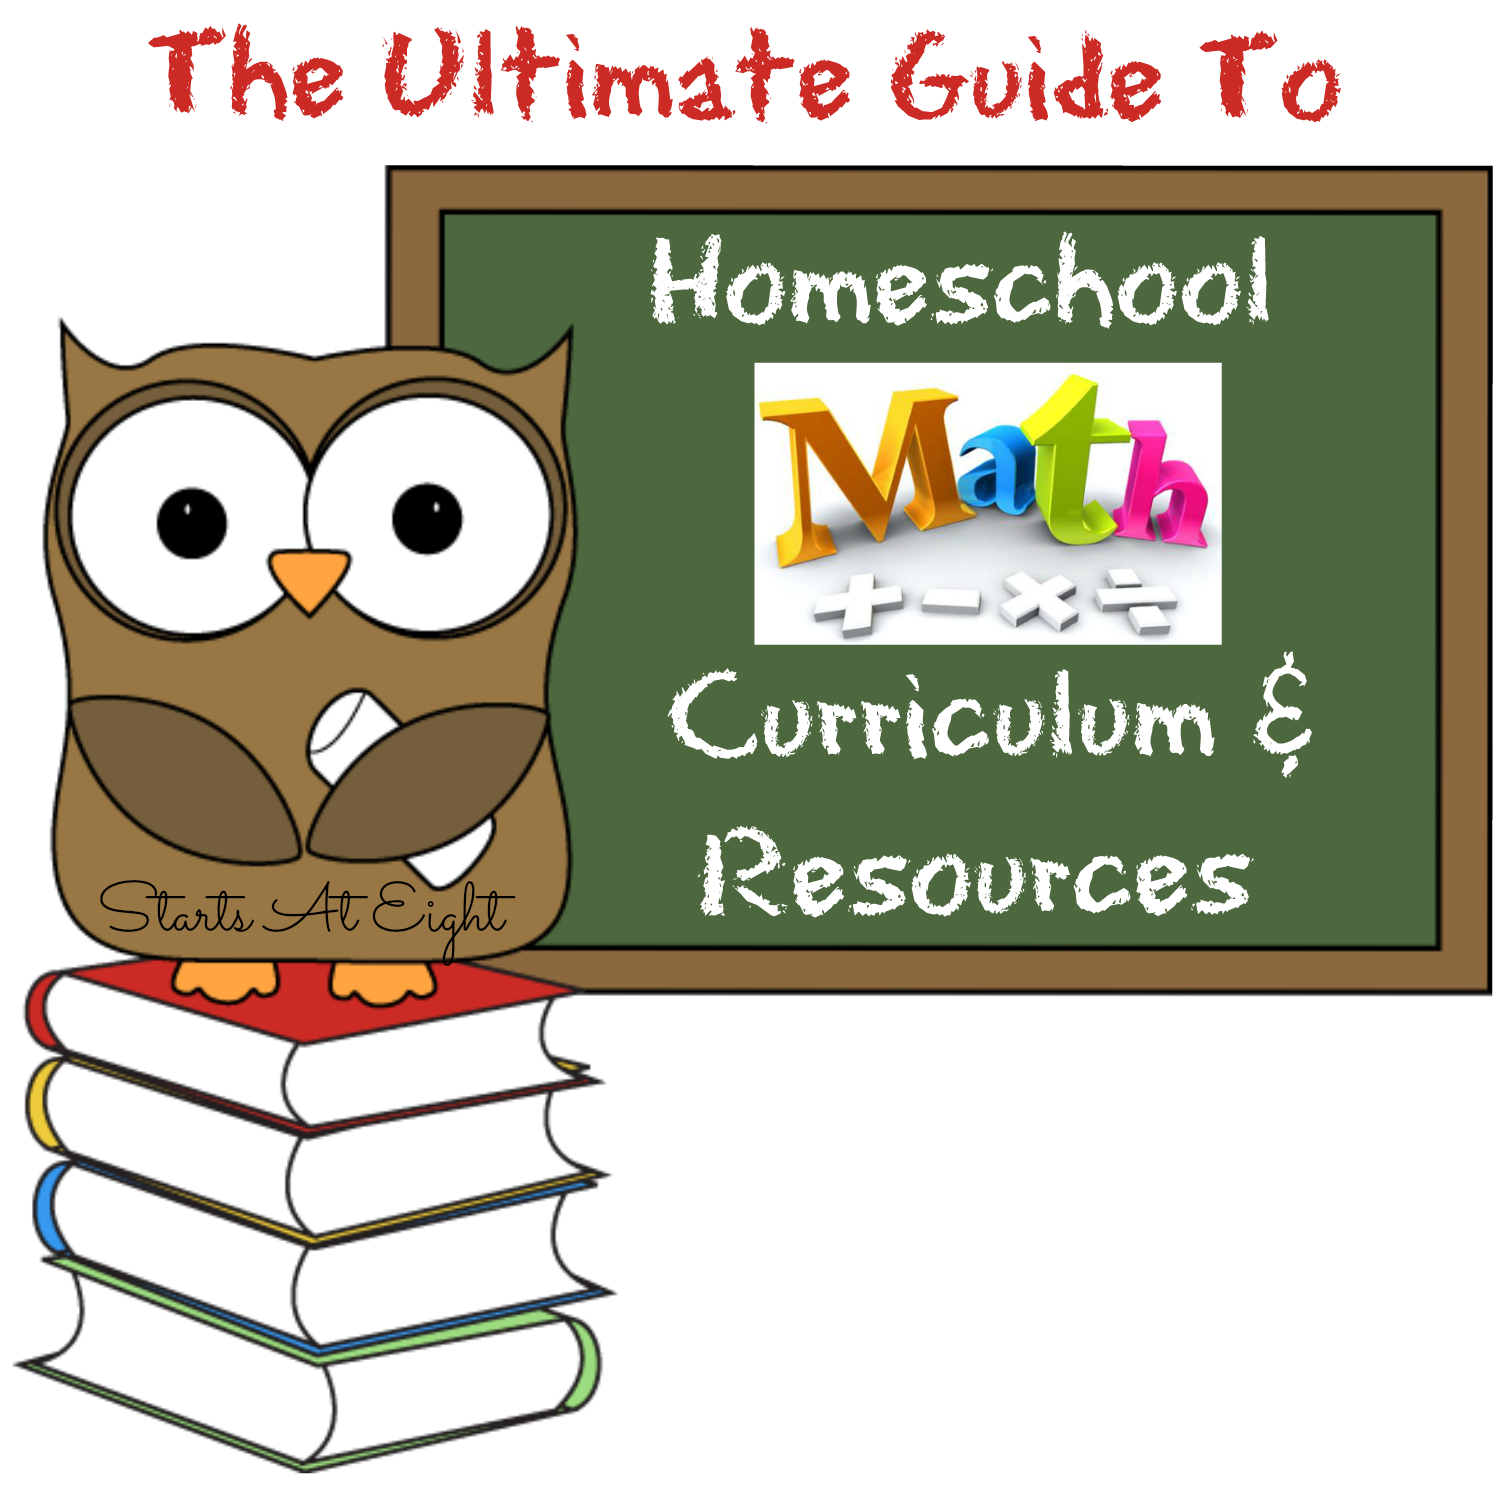 Curriculum clipart supported. The ultimate guide to